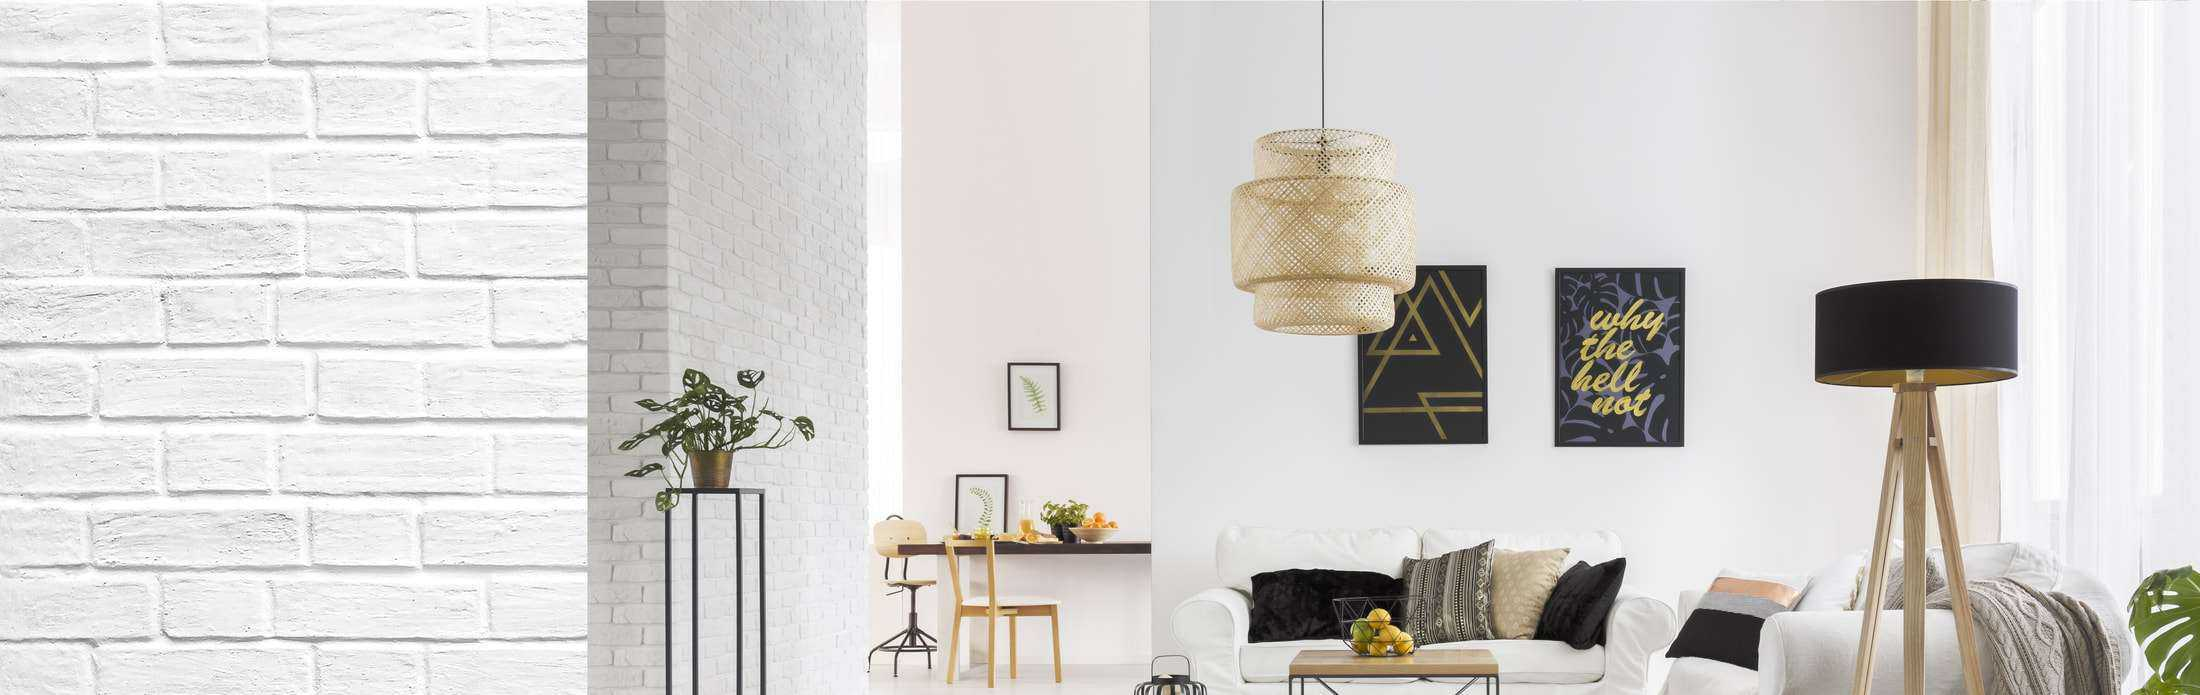 Discount Home Lighting, Ceiling Fans, Decor | Affordable Modern ...